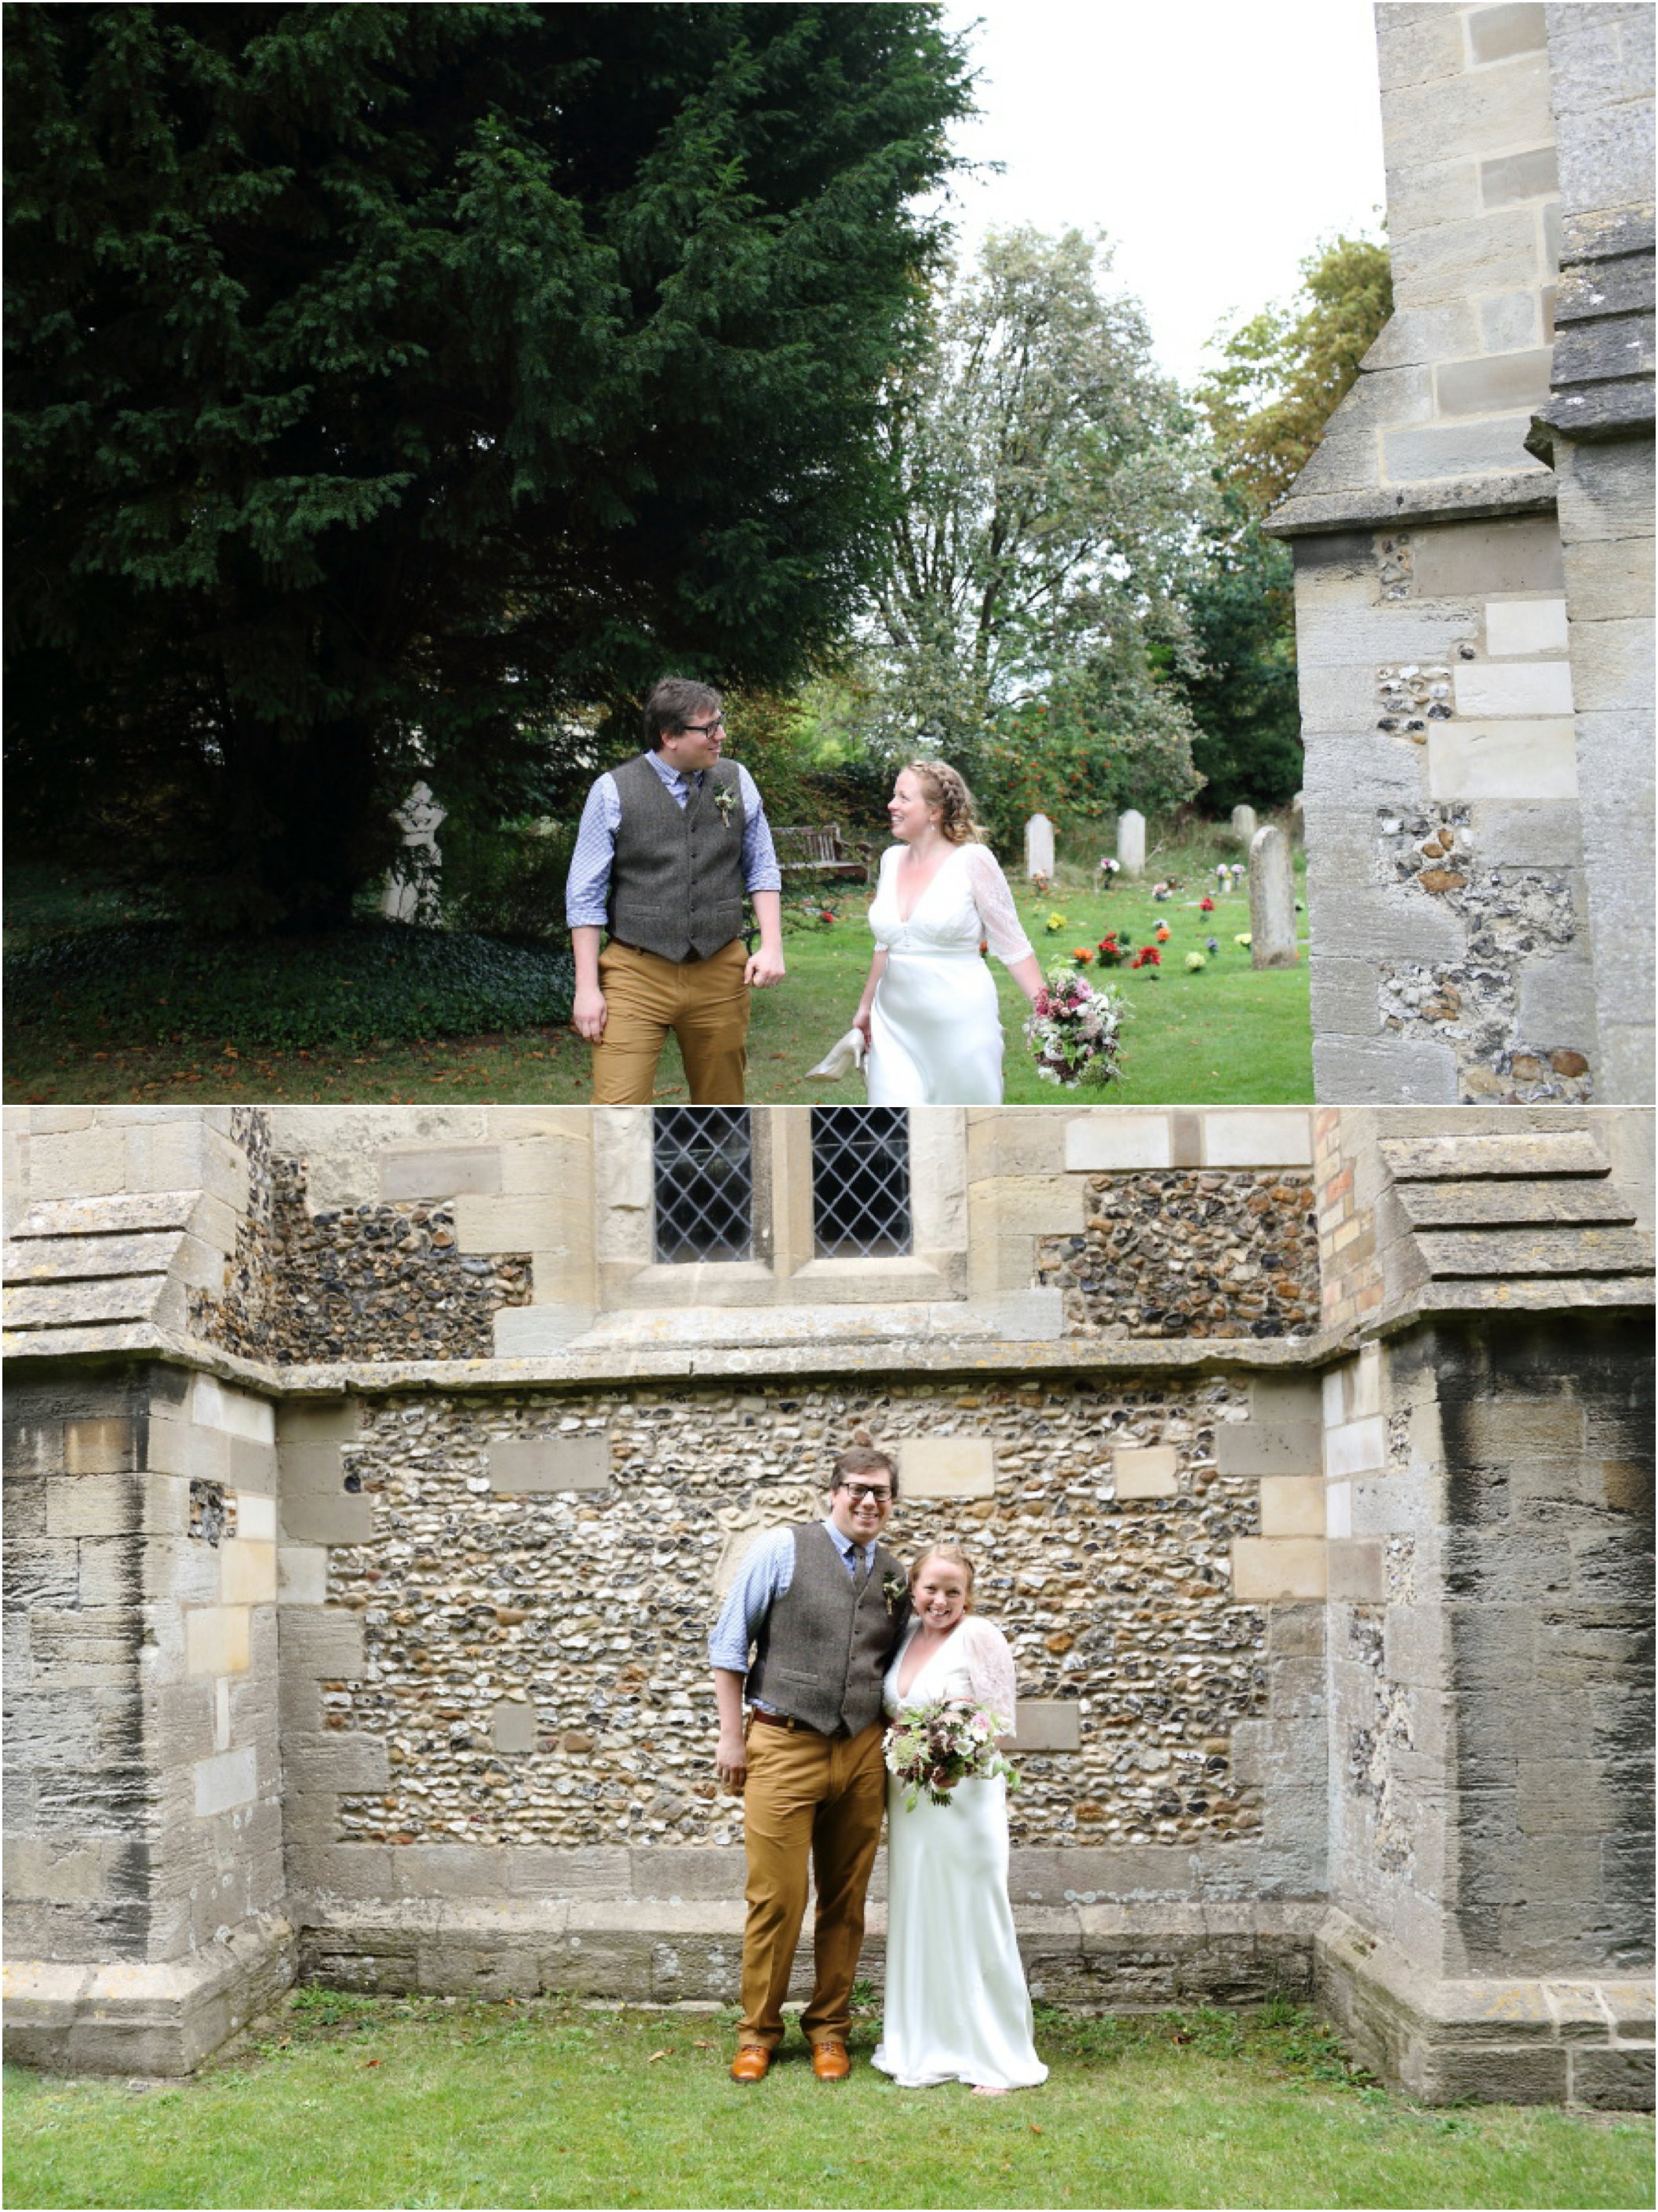 relaxed couples photography at Stapleford Church, Cambridge